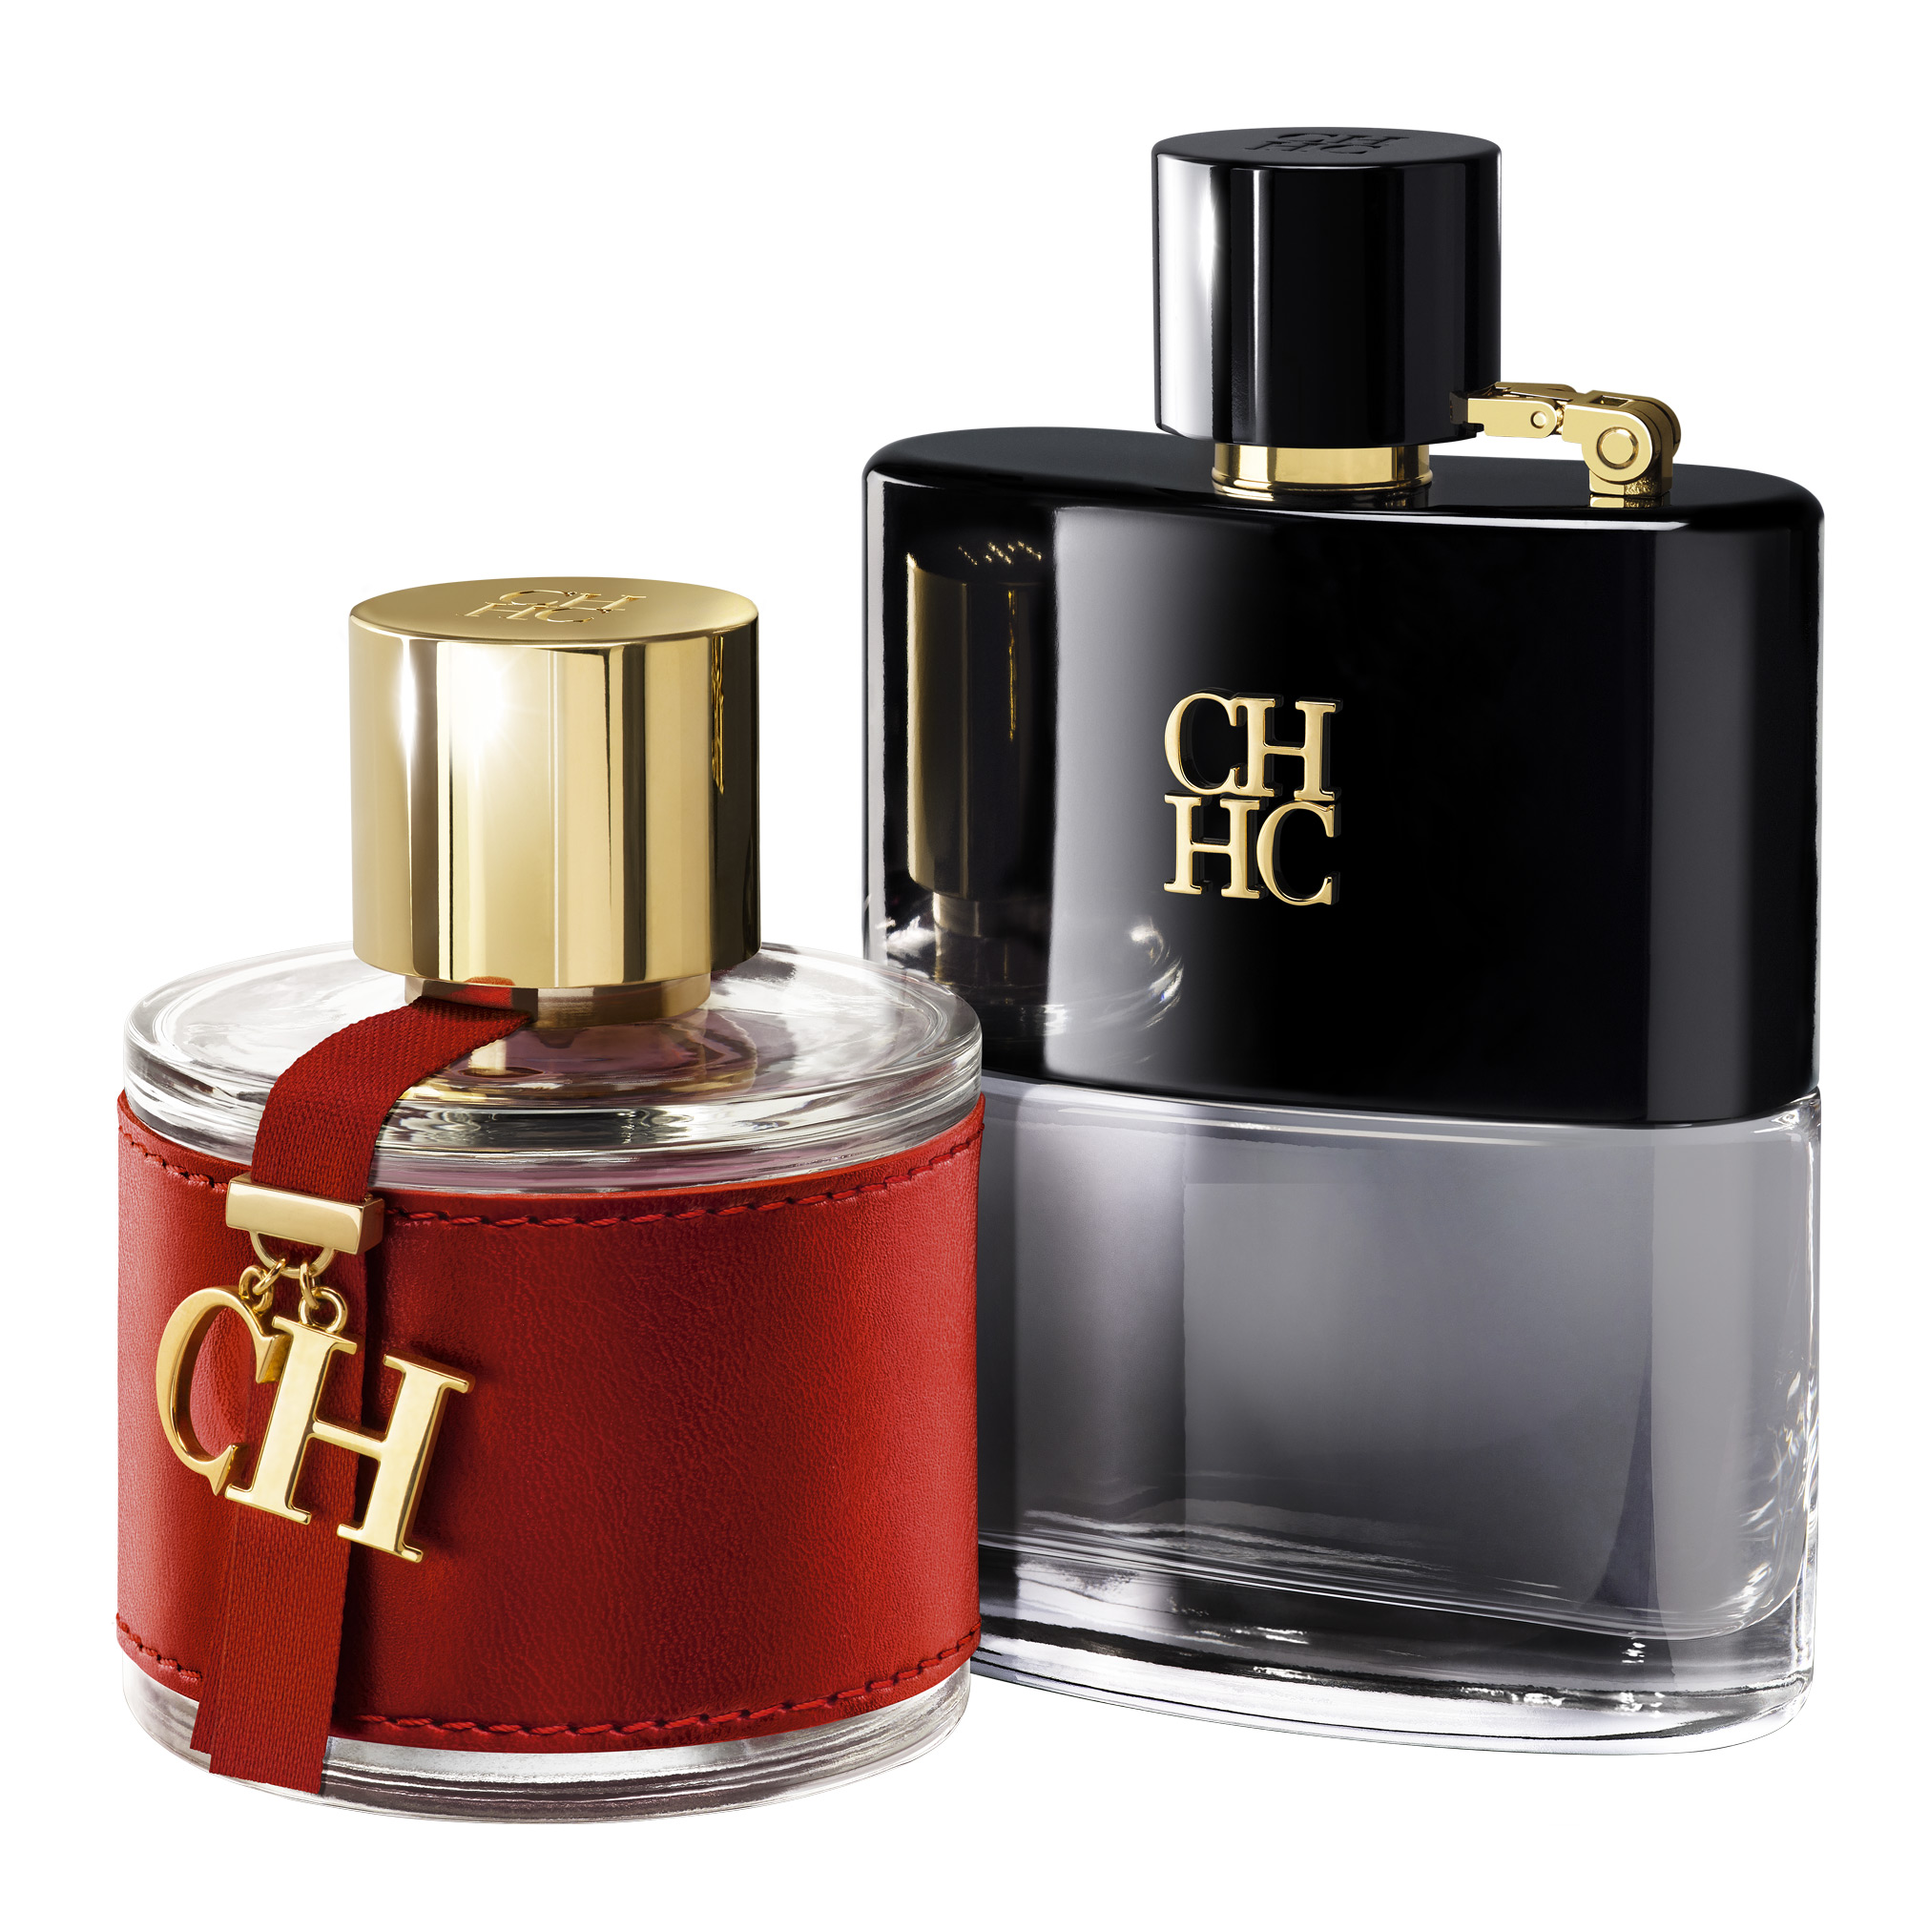 2b391f4507 CH Carolina Herrera is available as 30, 50 and 100 ml Eau de Toilette. CH  Men Prive is available as 50 and 100 ml Eau de Toilette.